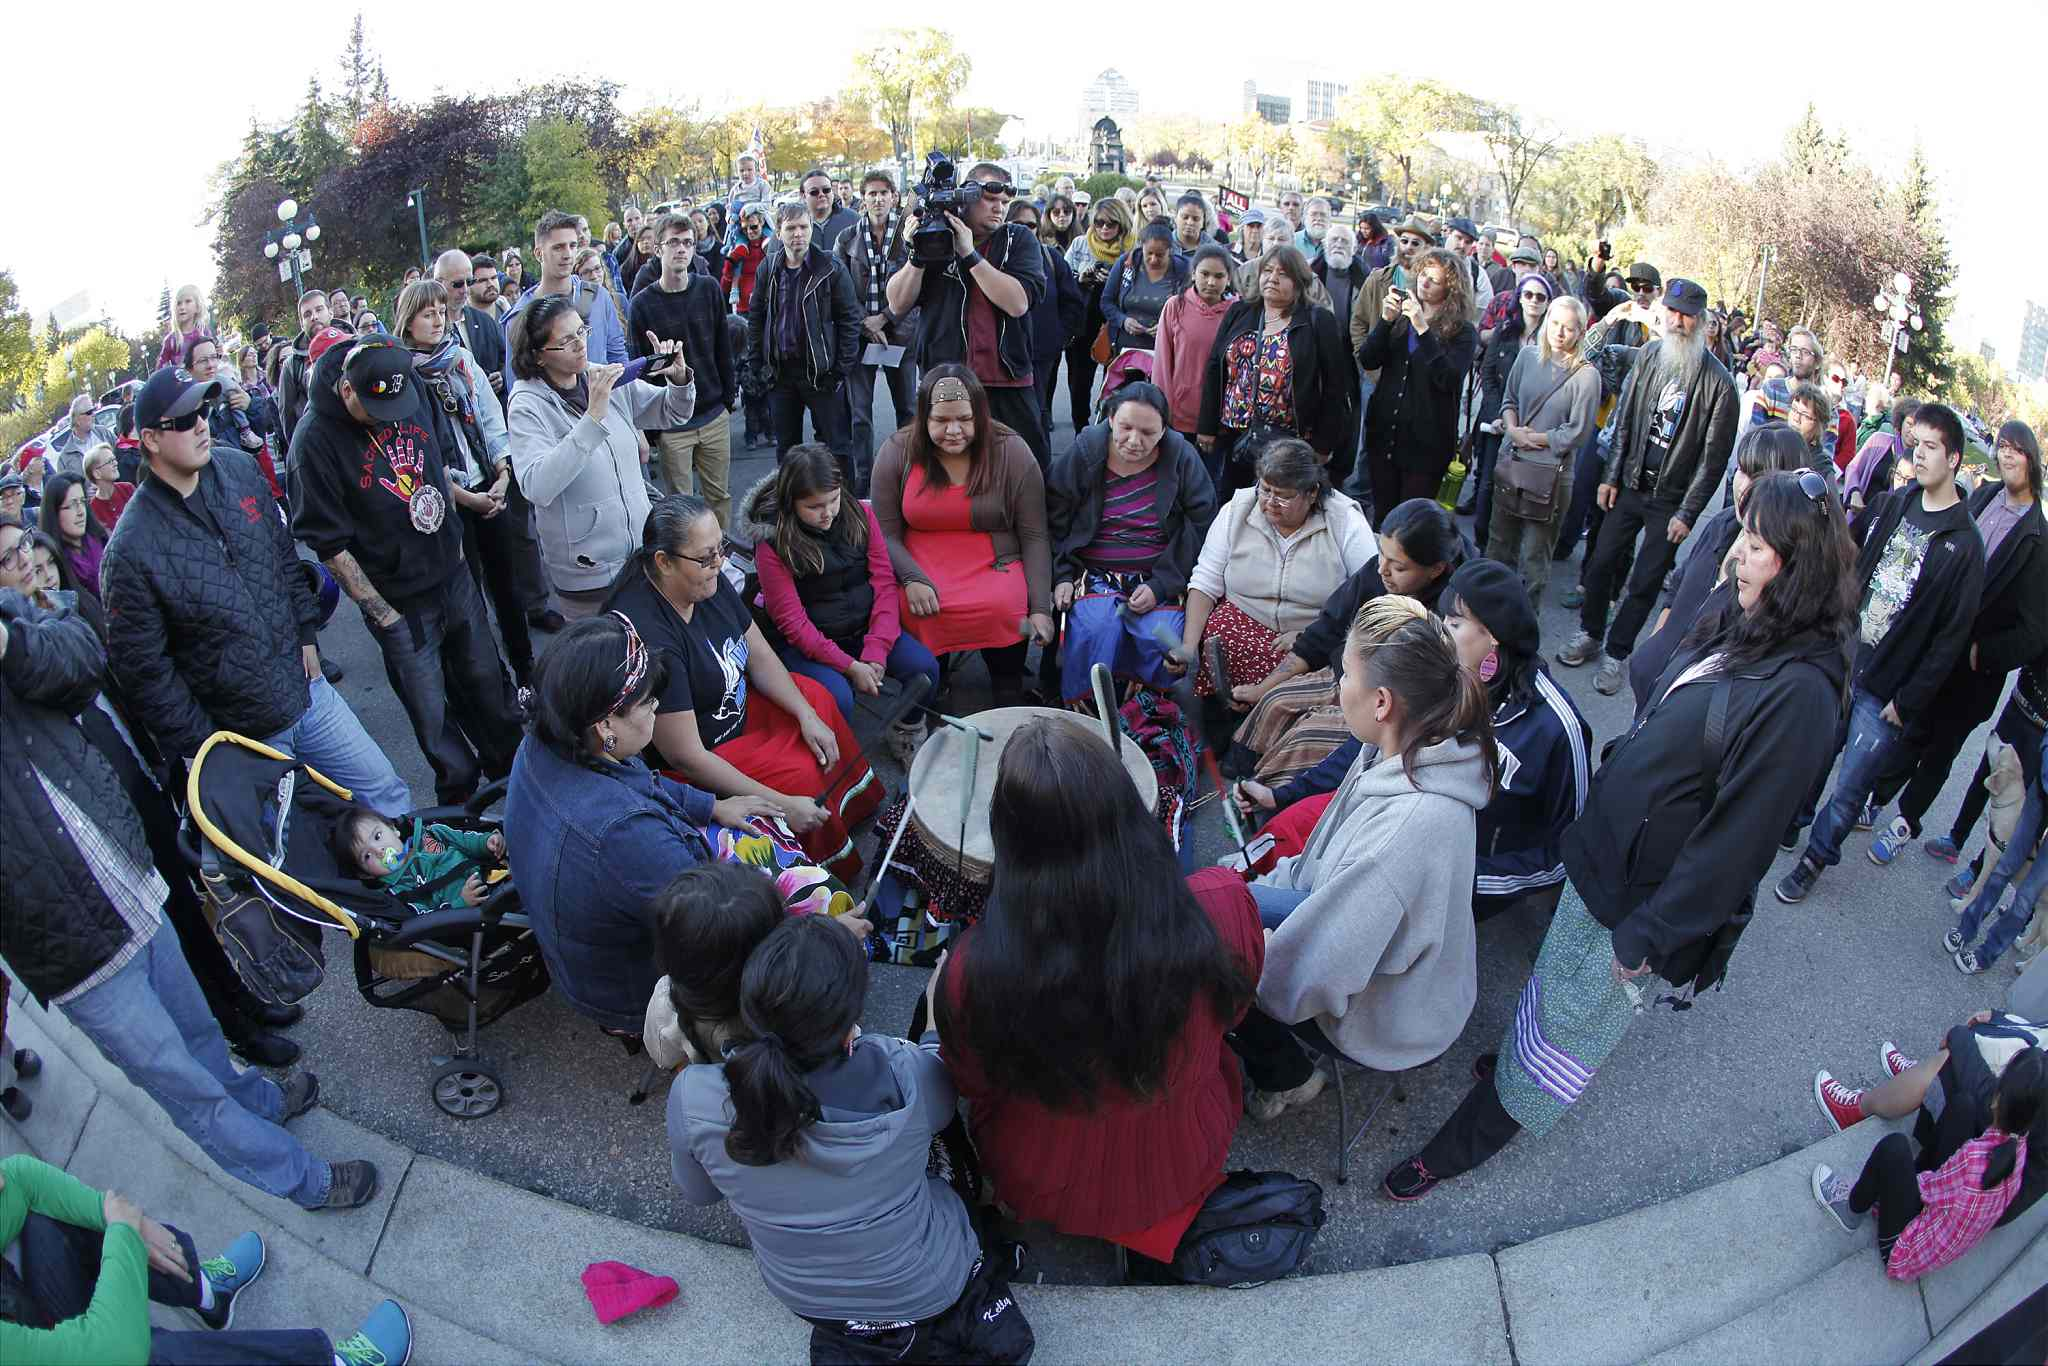 Idle No More supporters gather at the Manitoba legislature in Winnipeg as part of a global day of action Monday.